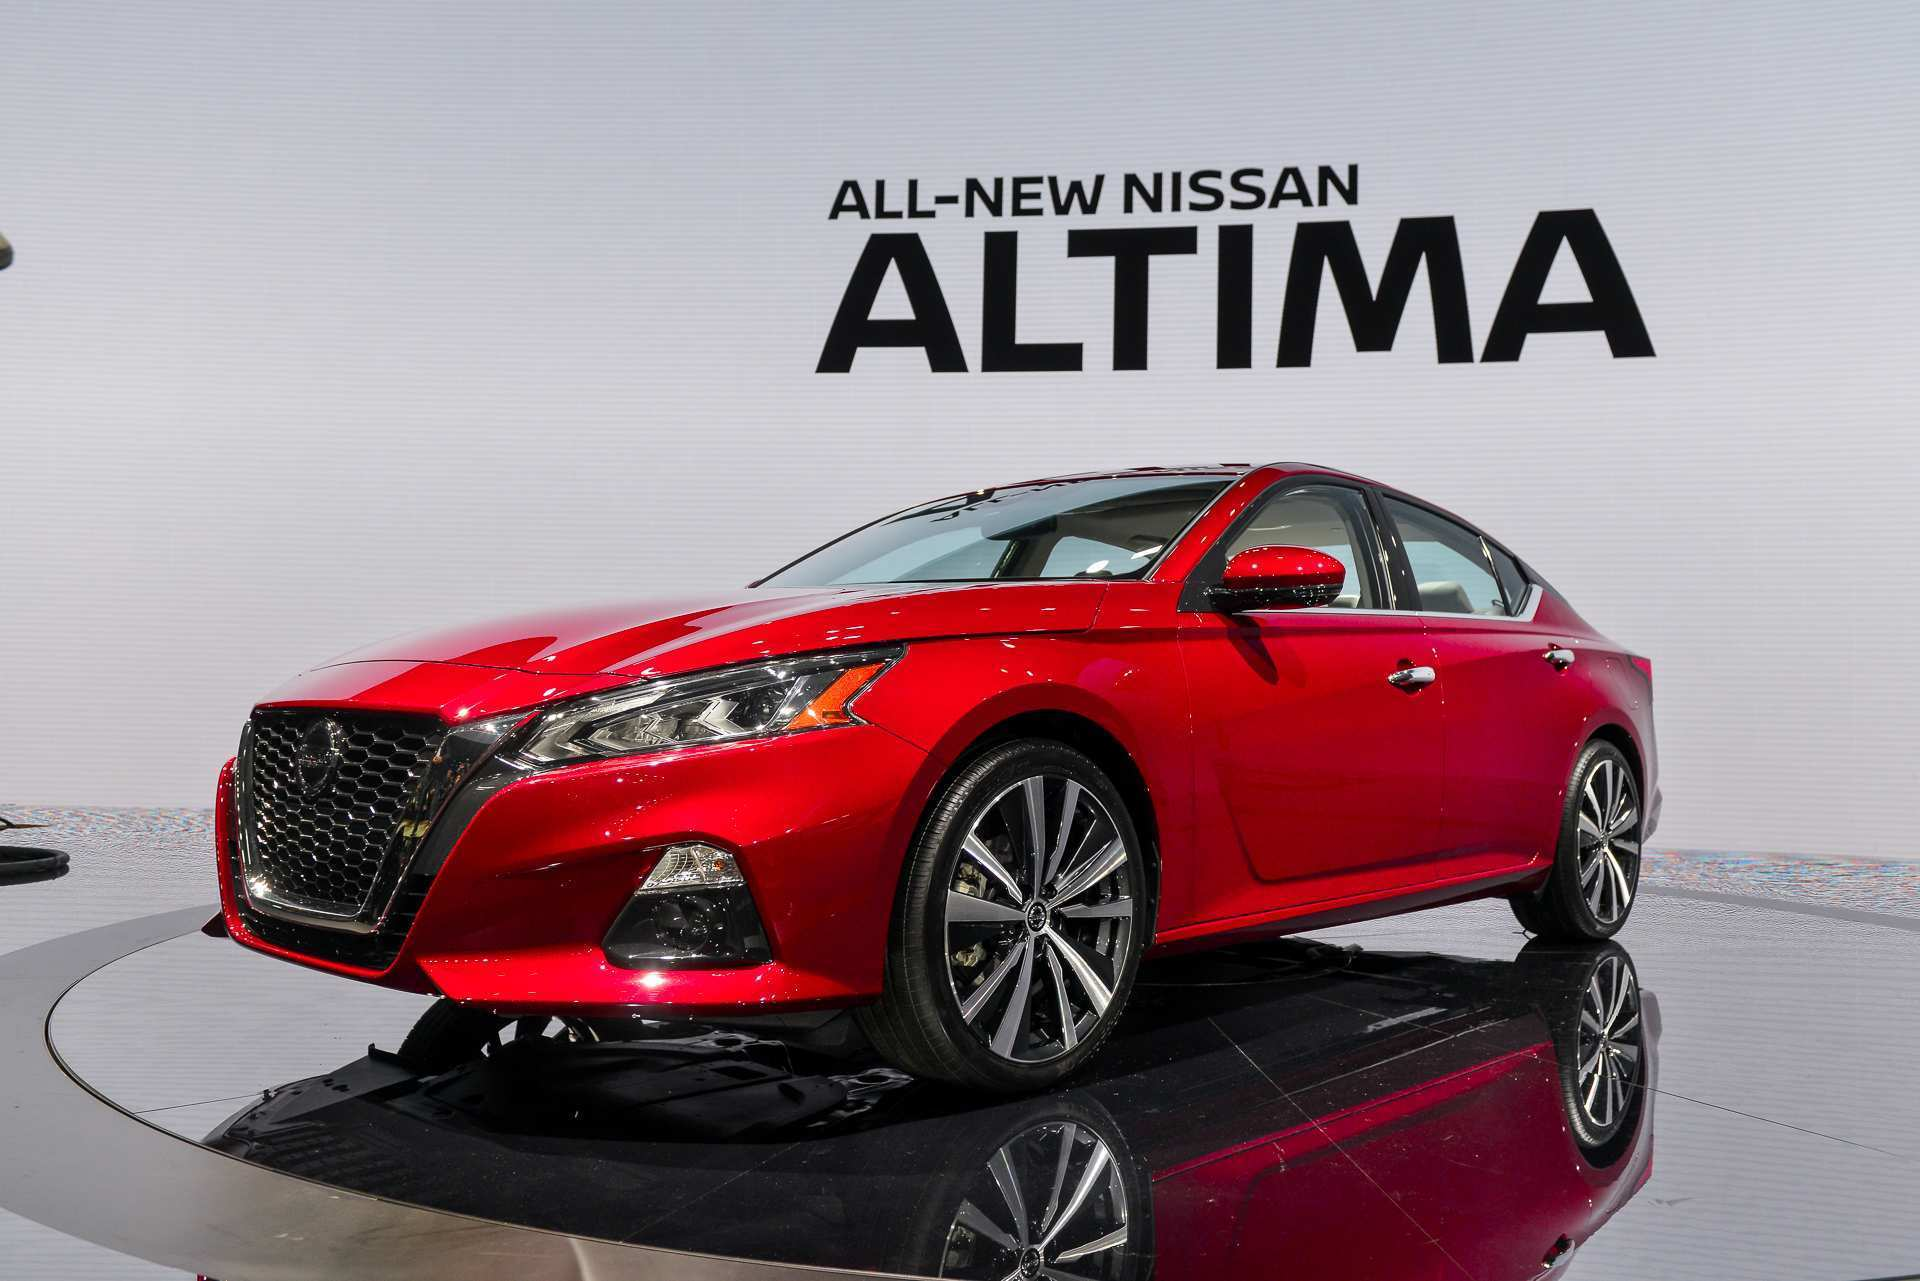 71 Concept of New Nissan Altima 2019 Price New Interior Exterior with New Nissan Altima 2019 Price New Interior